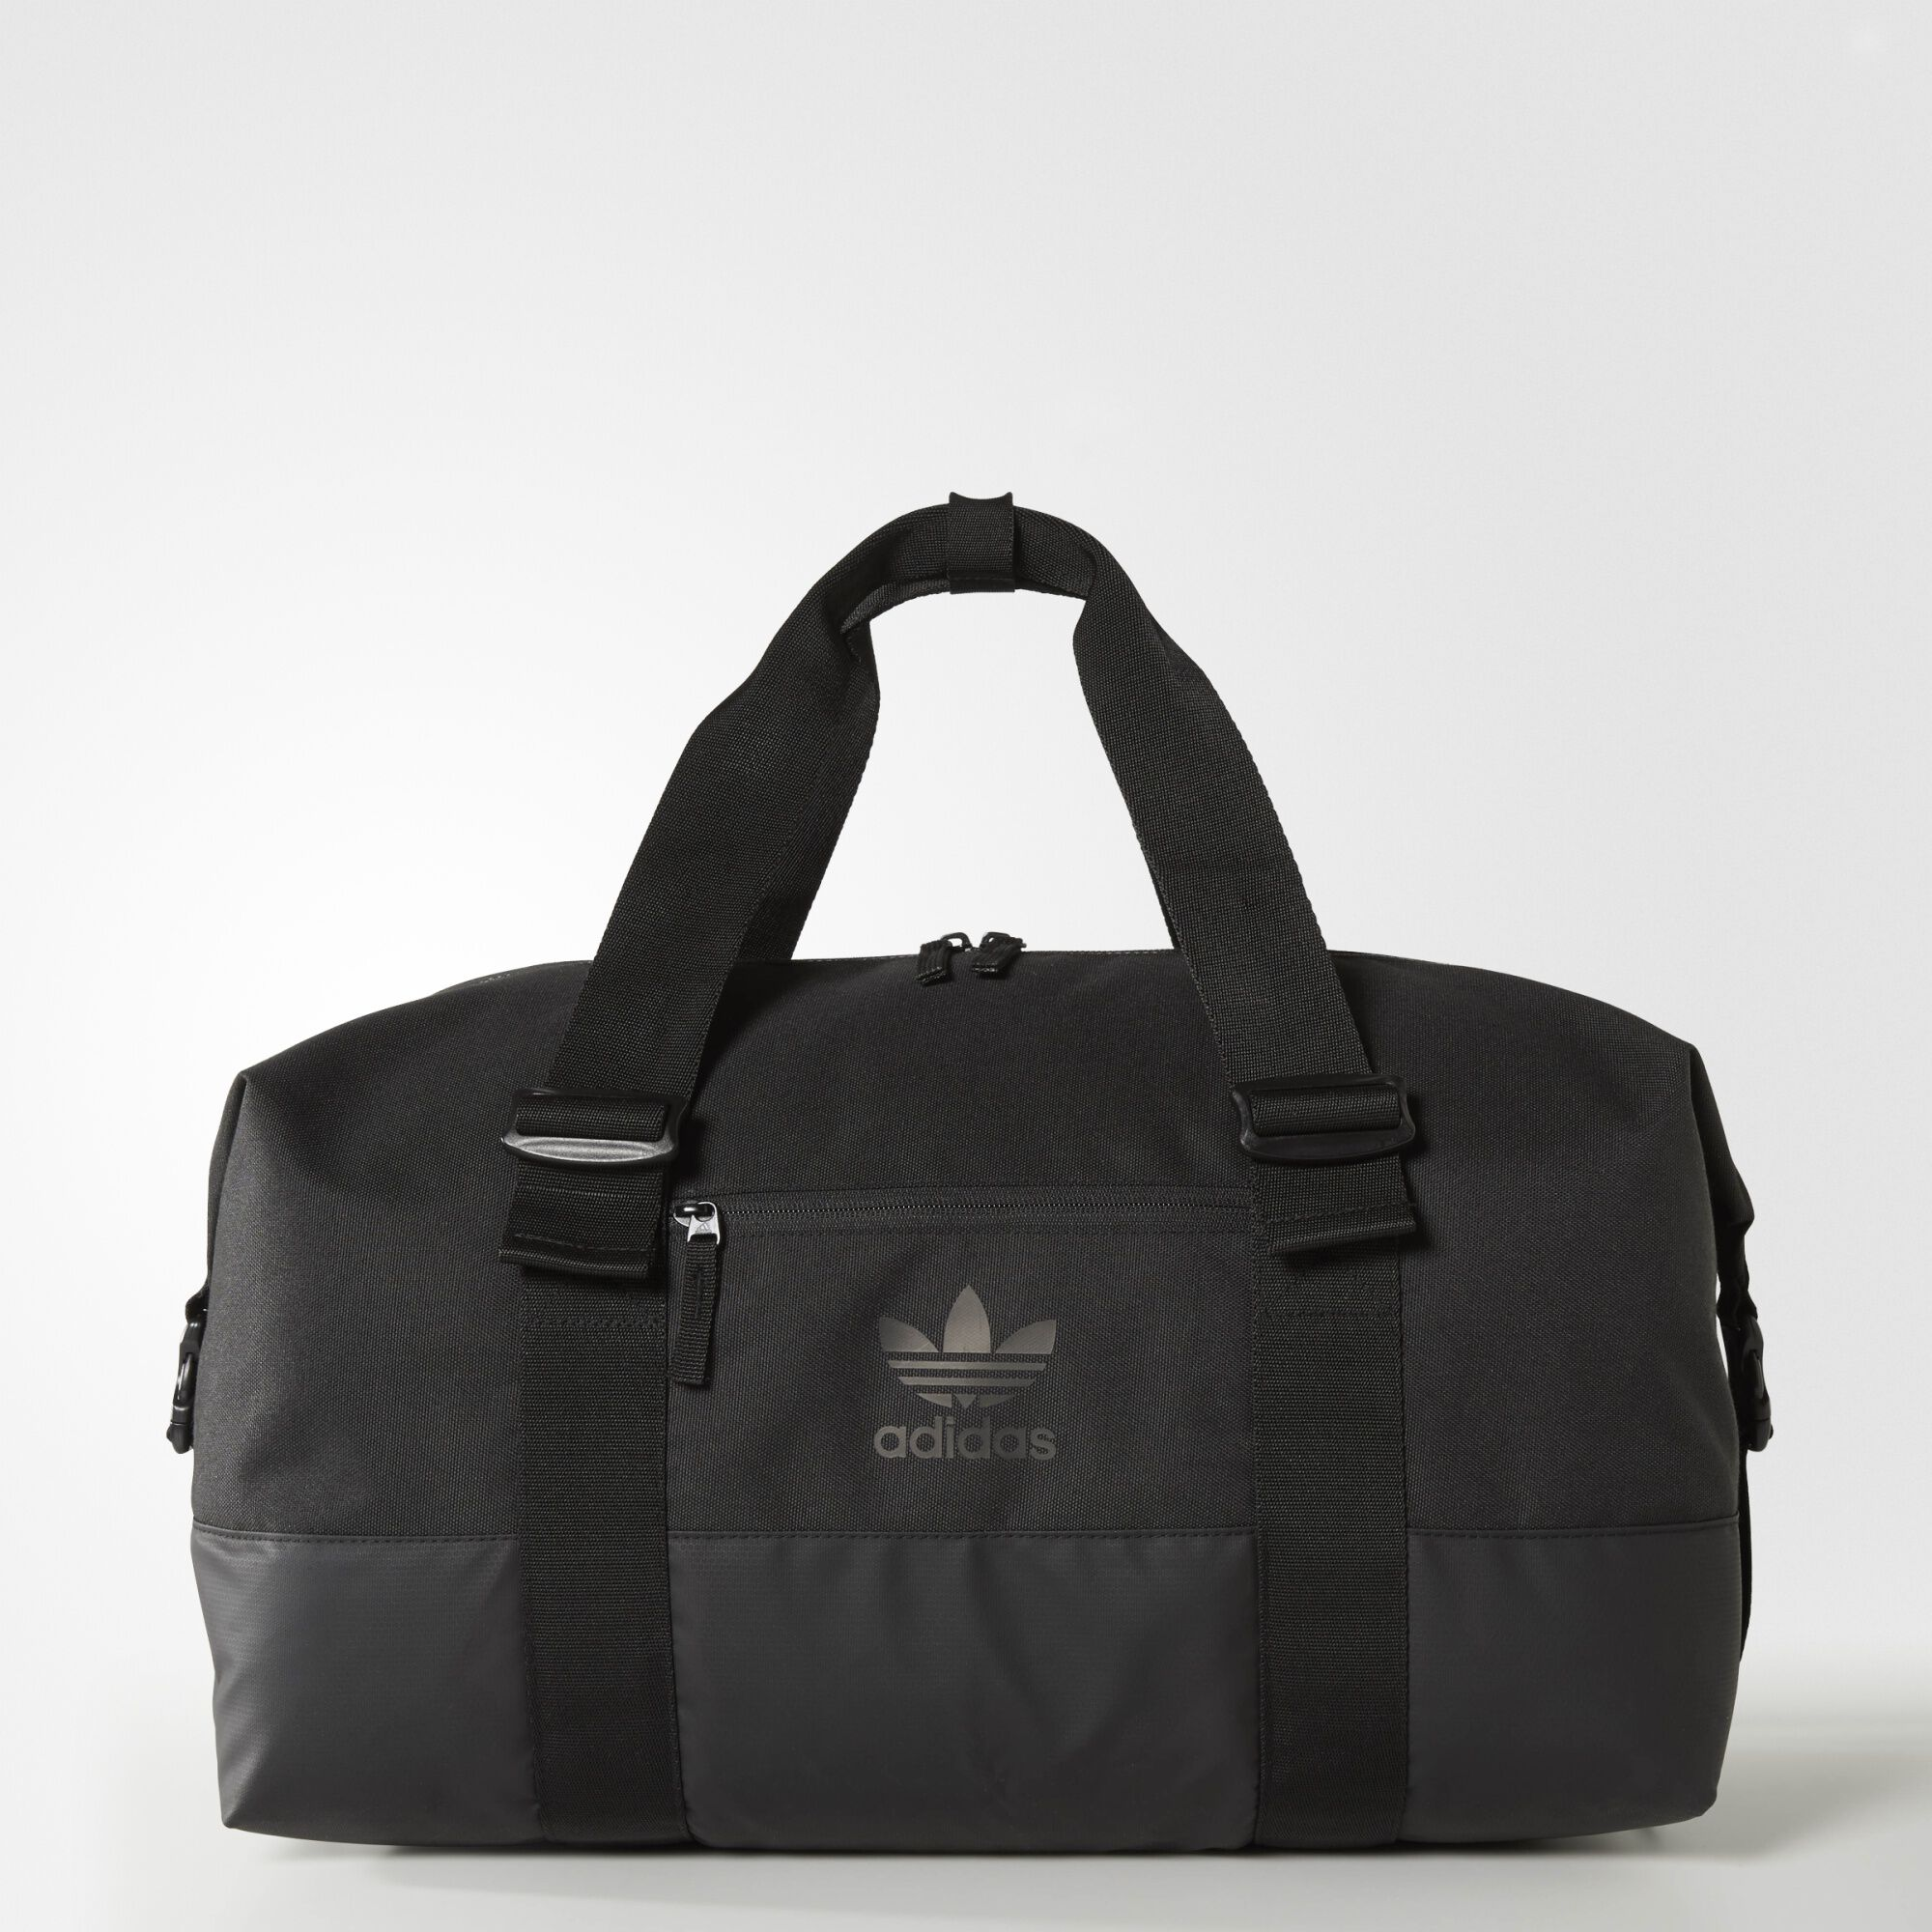 adidas sports bag cheap   OFF33% The Largest Catalog Discounts ab2034c33f131